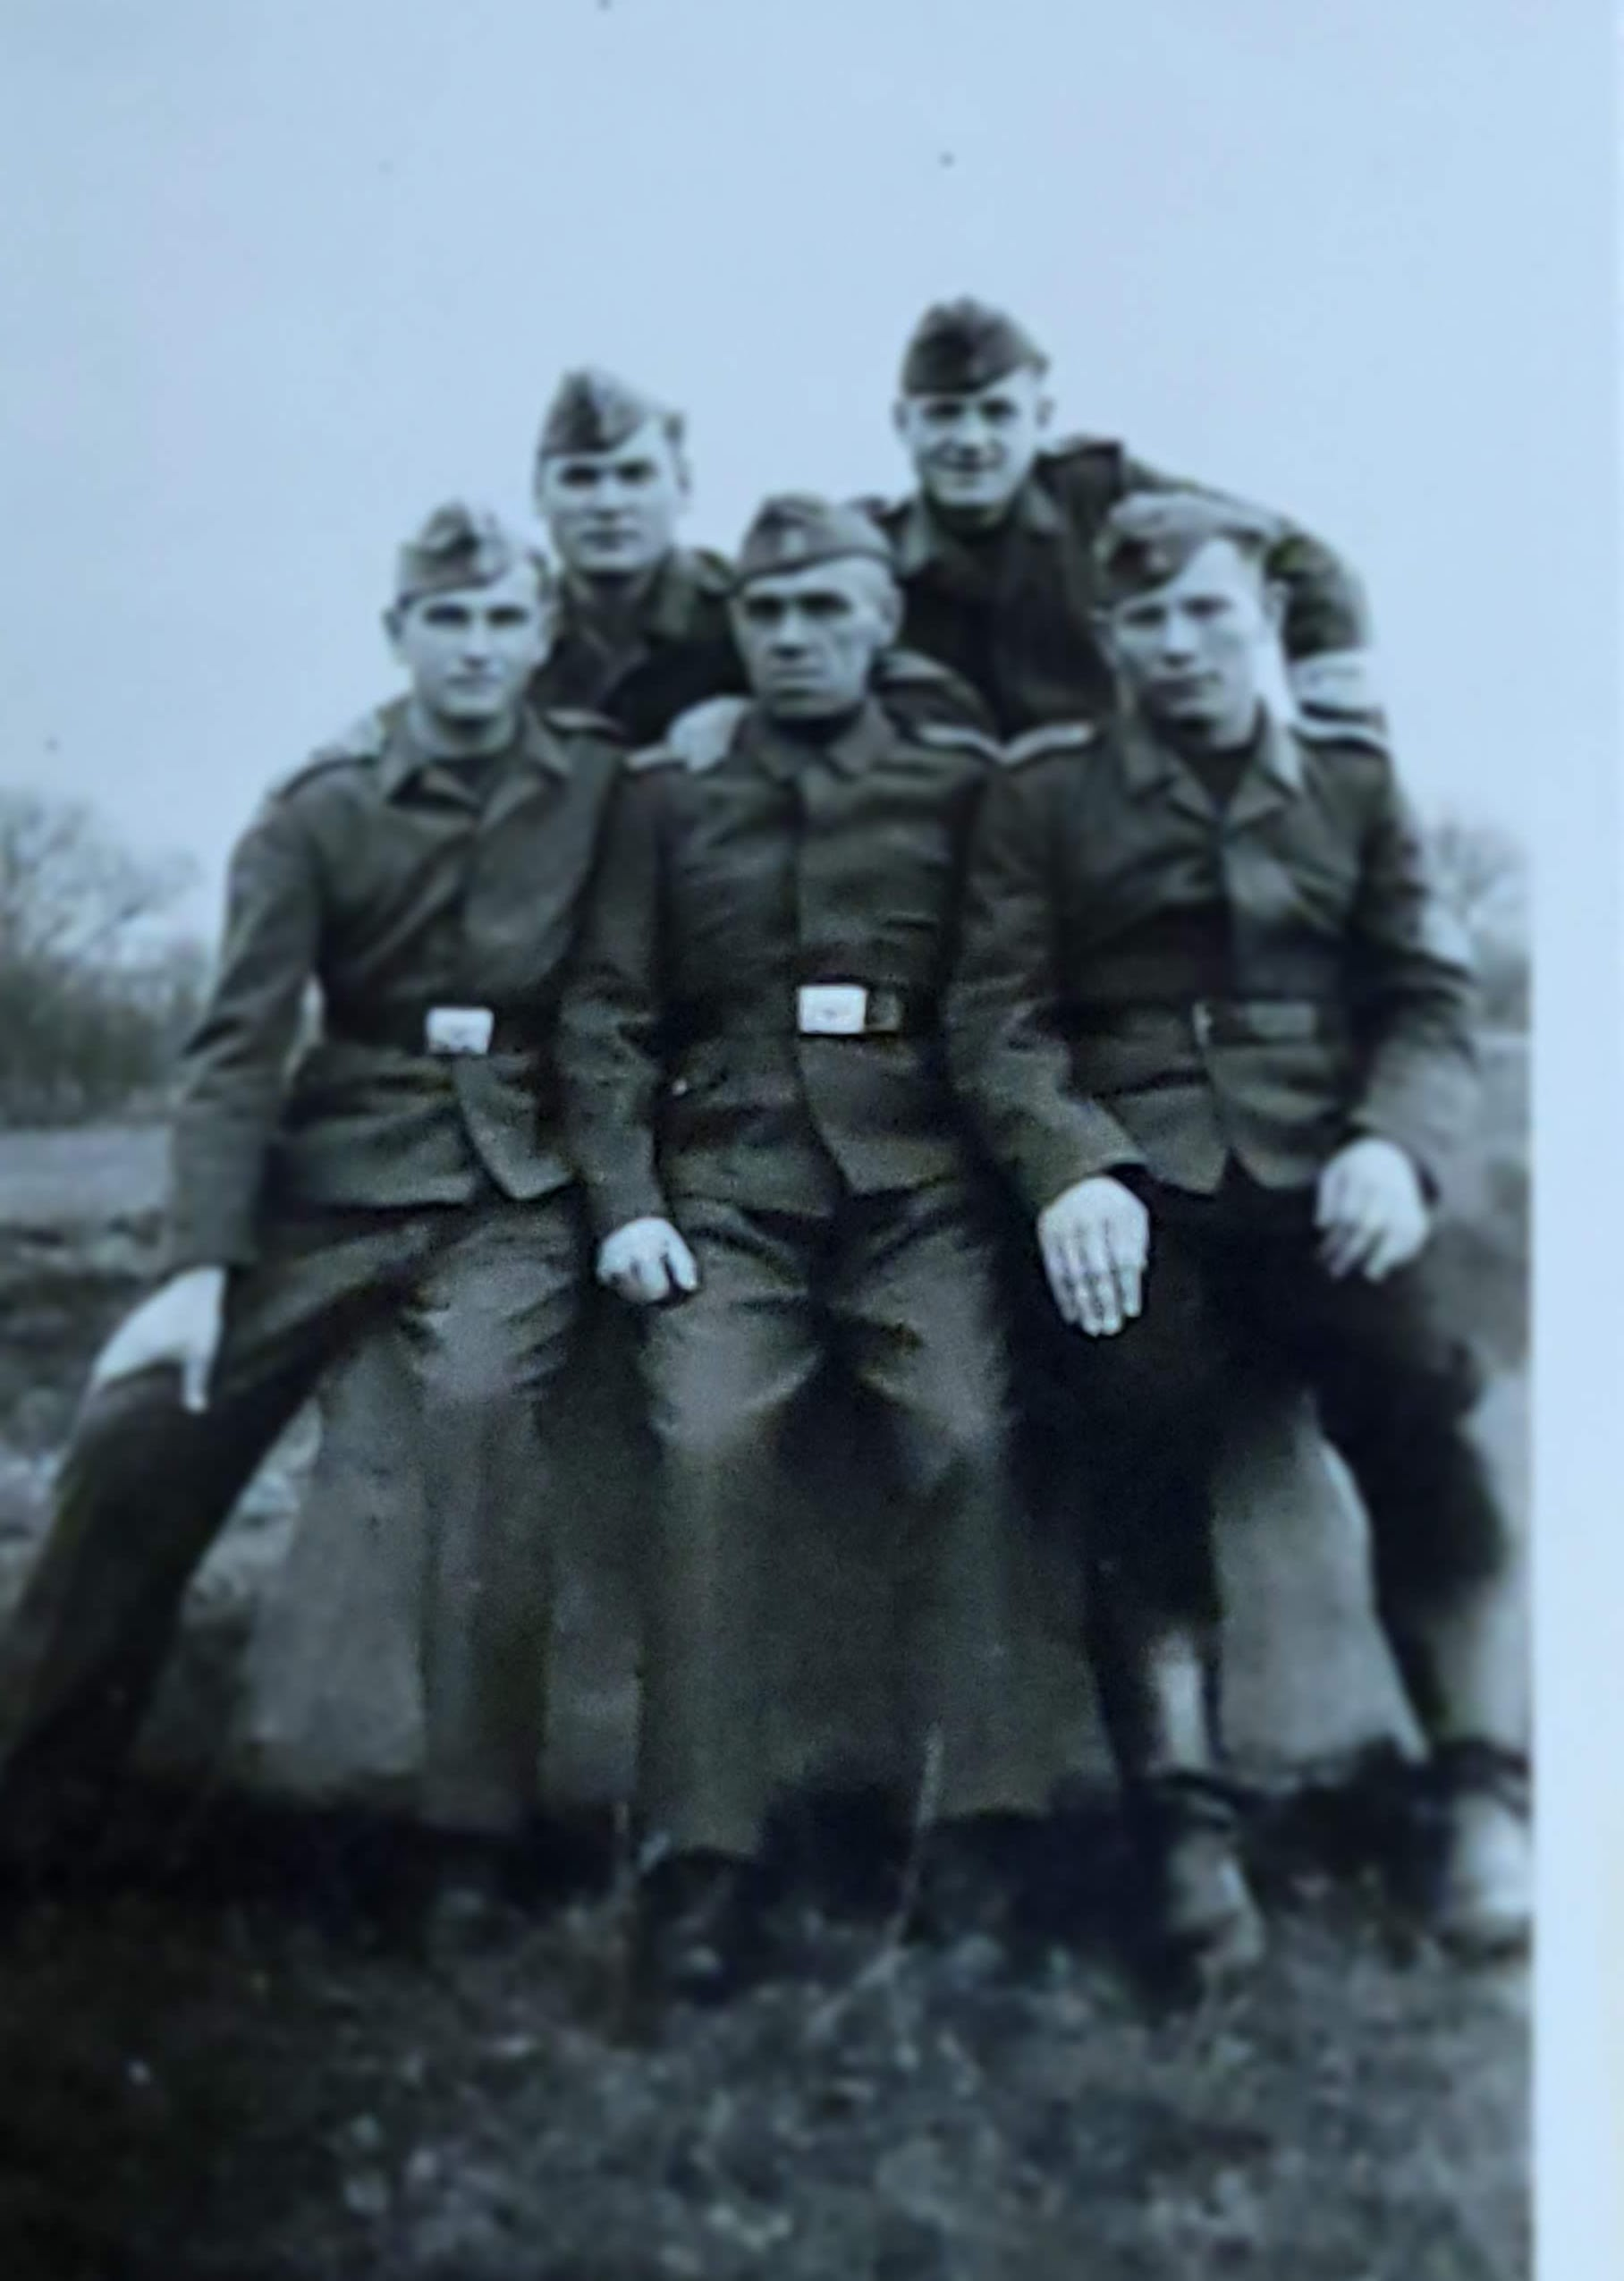 1944, friends in the partisan army